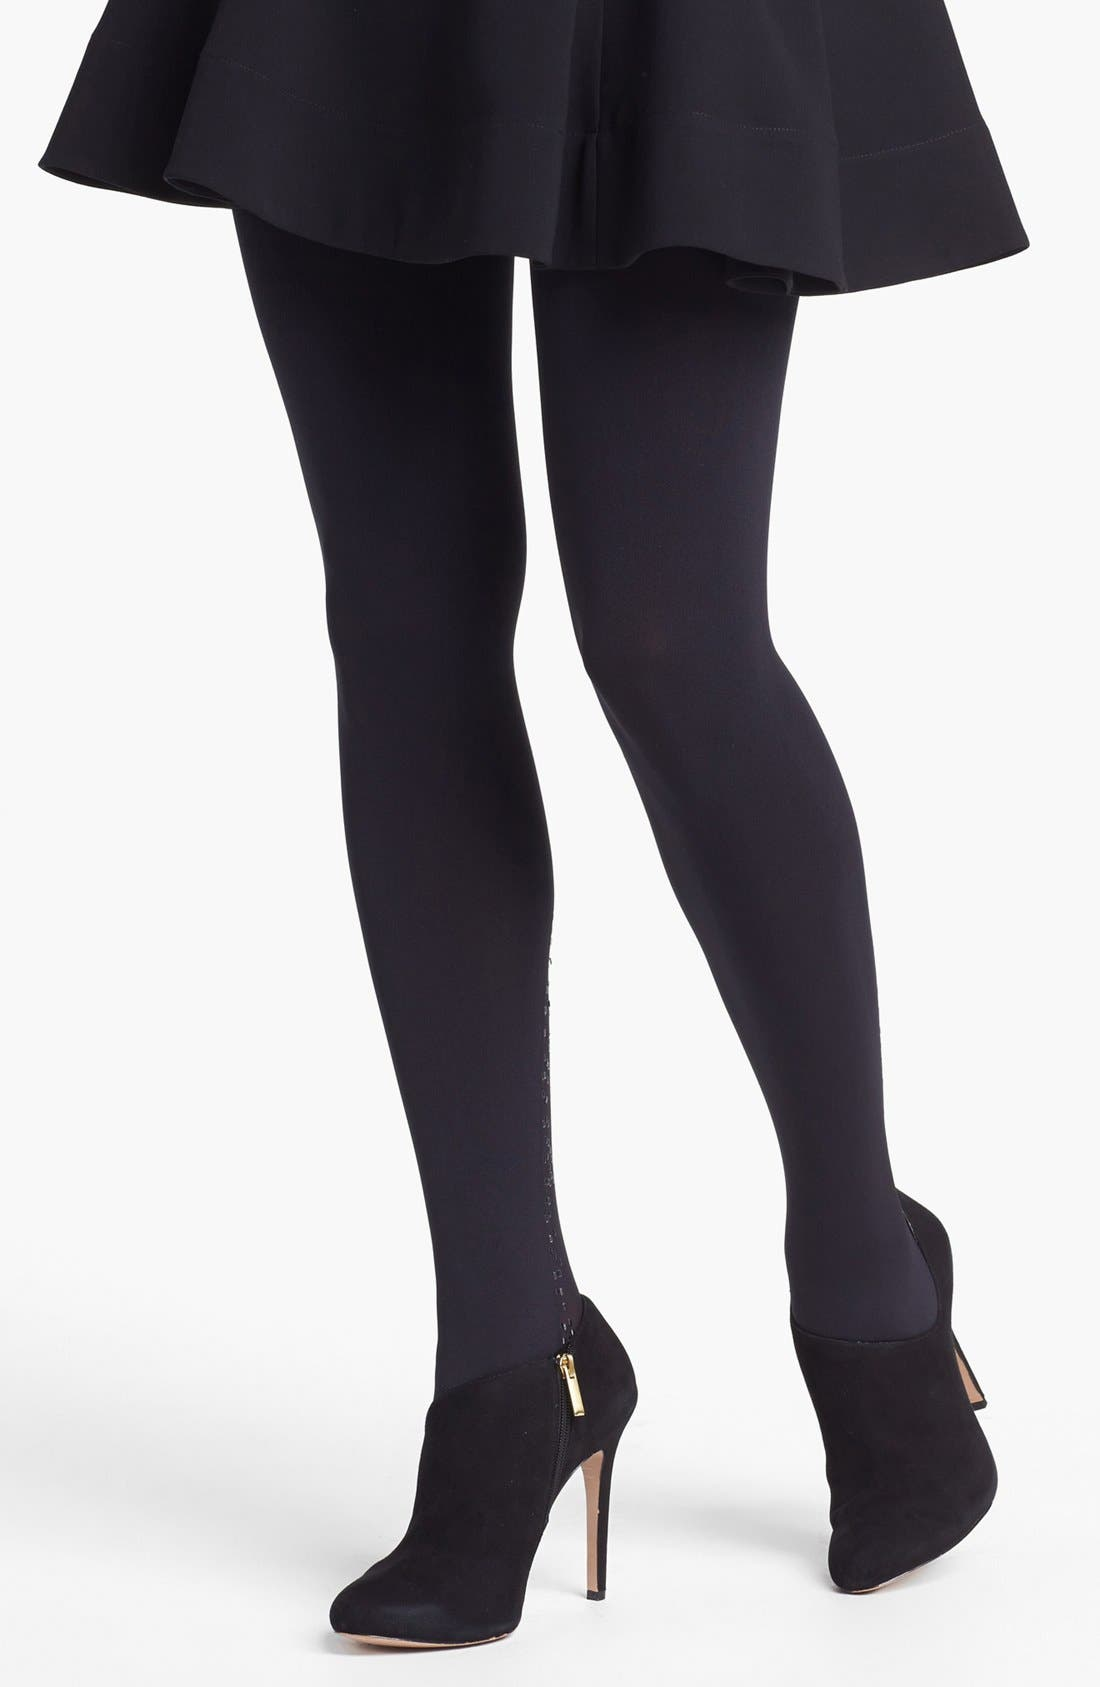 Alternate Image 2  - Pretty Polly 'Touch' Embellished Tights